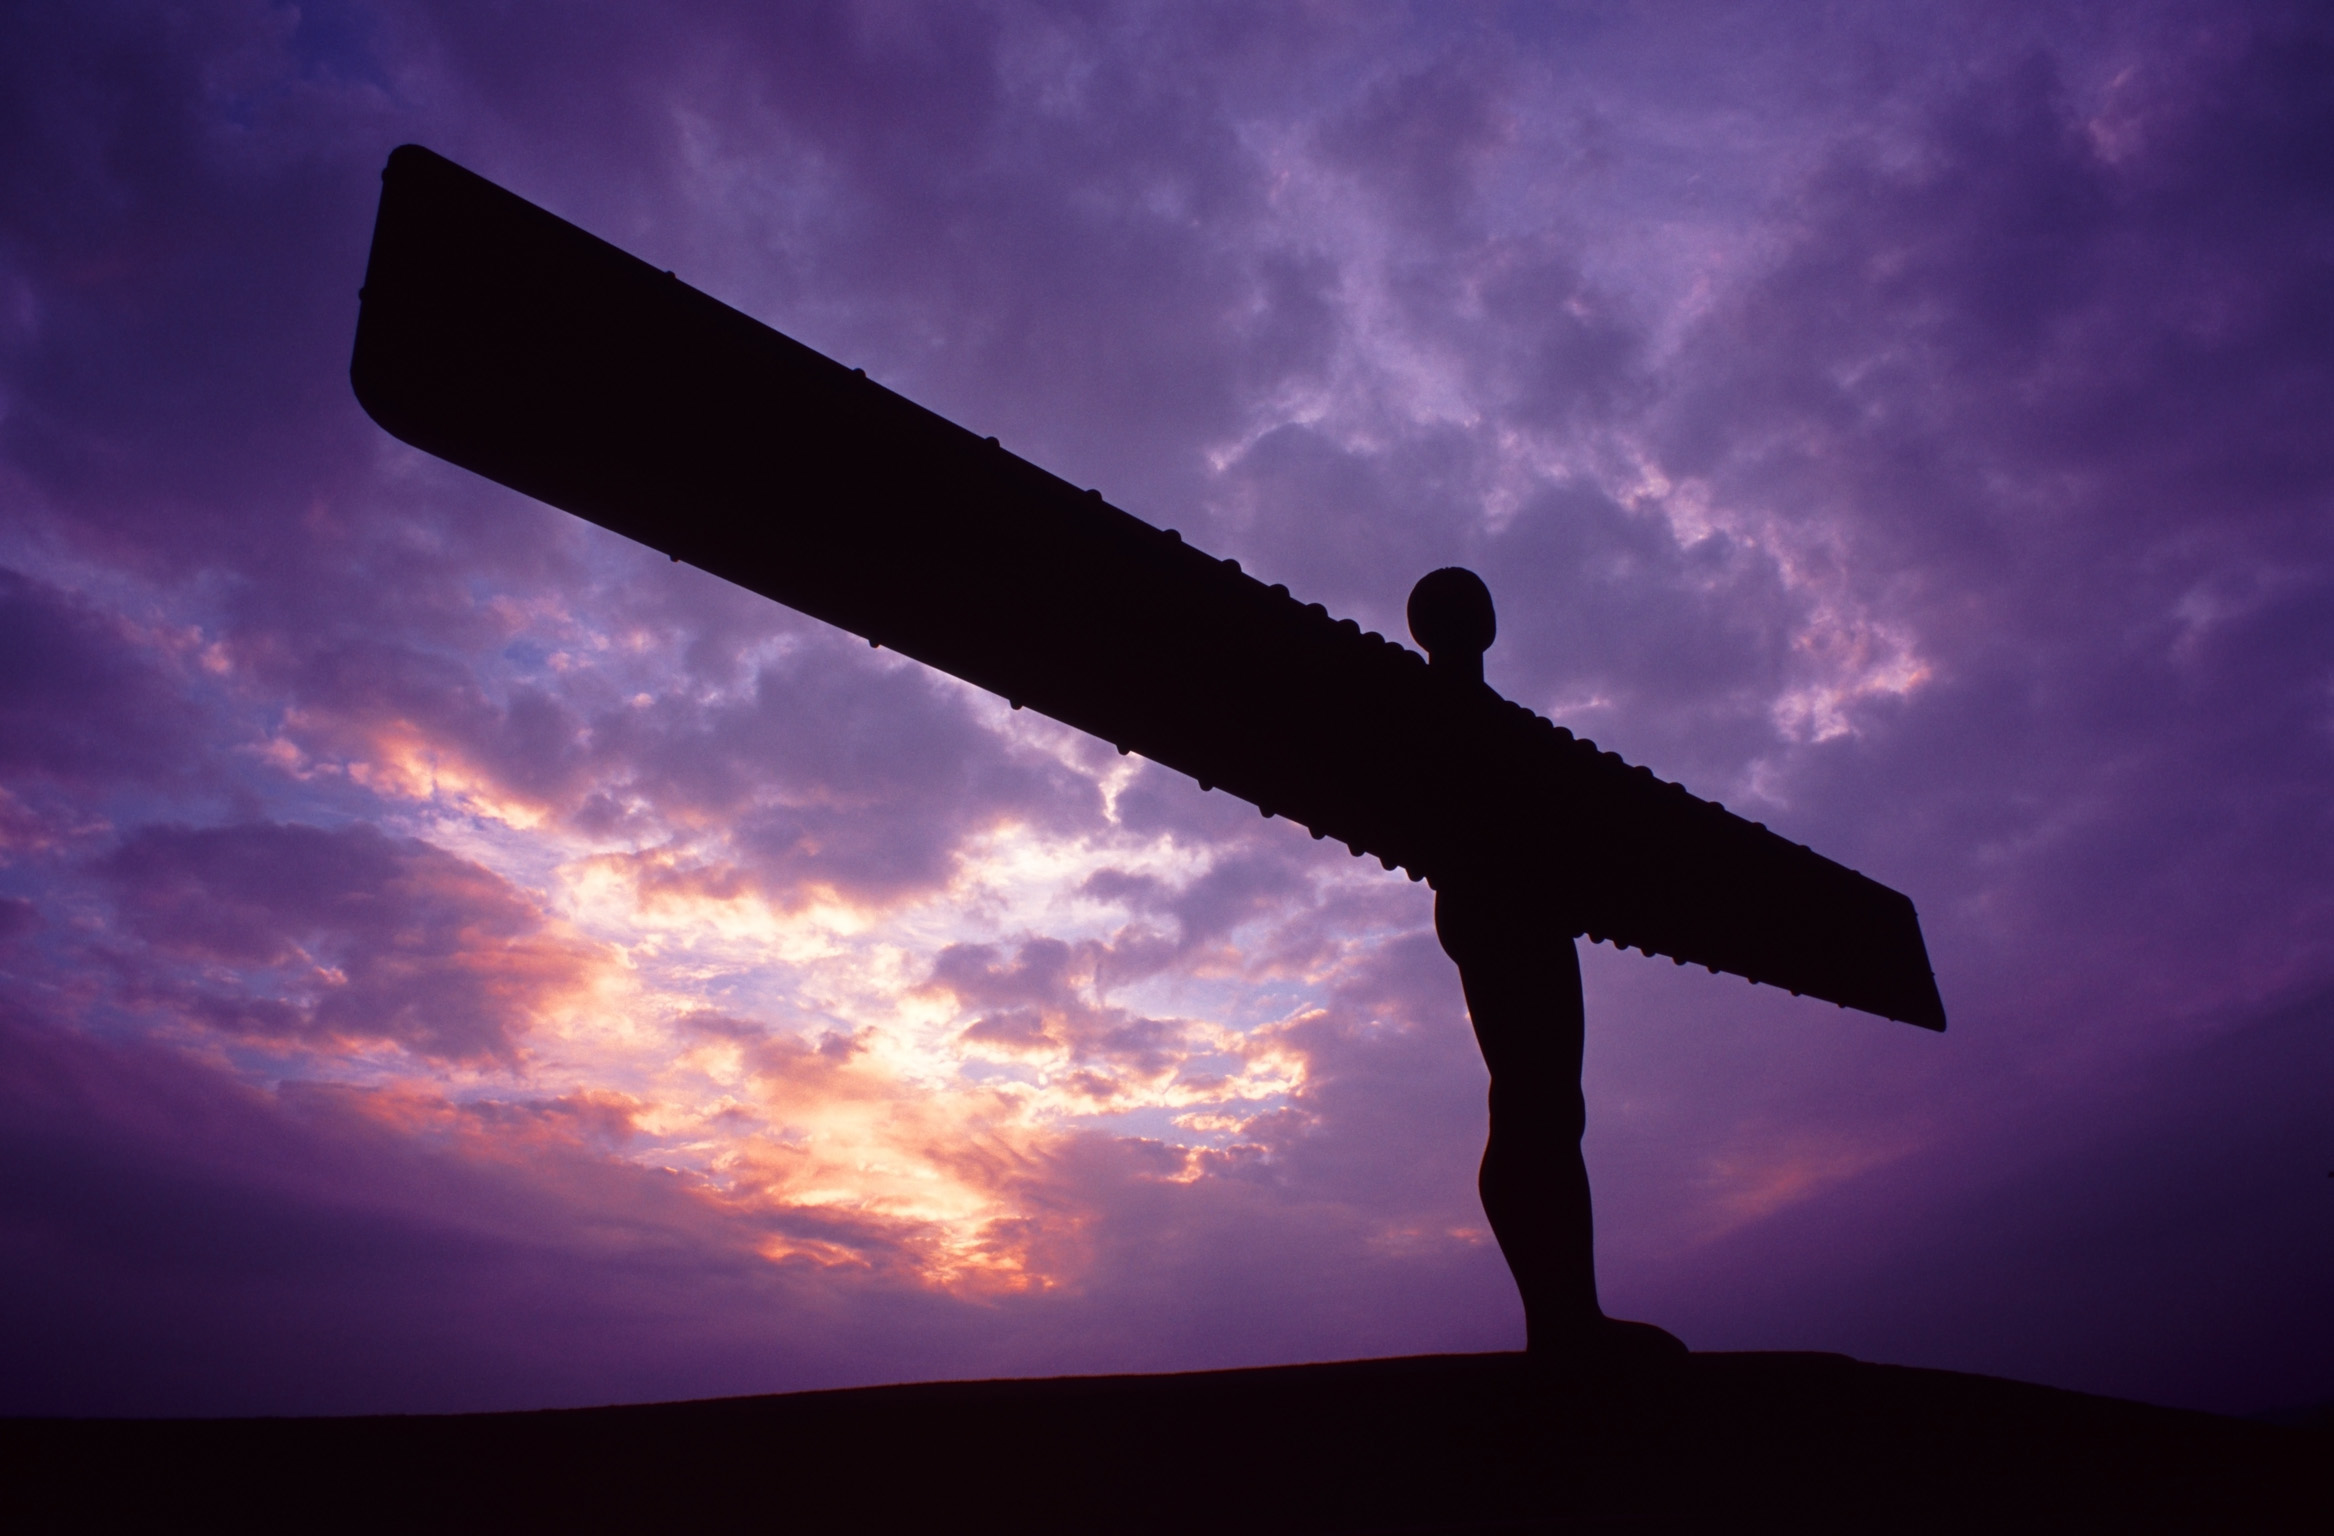 Angel of the North sculpture silhouetted against a colourful purple sky at sunset, Gateshead, Newscastle